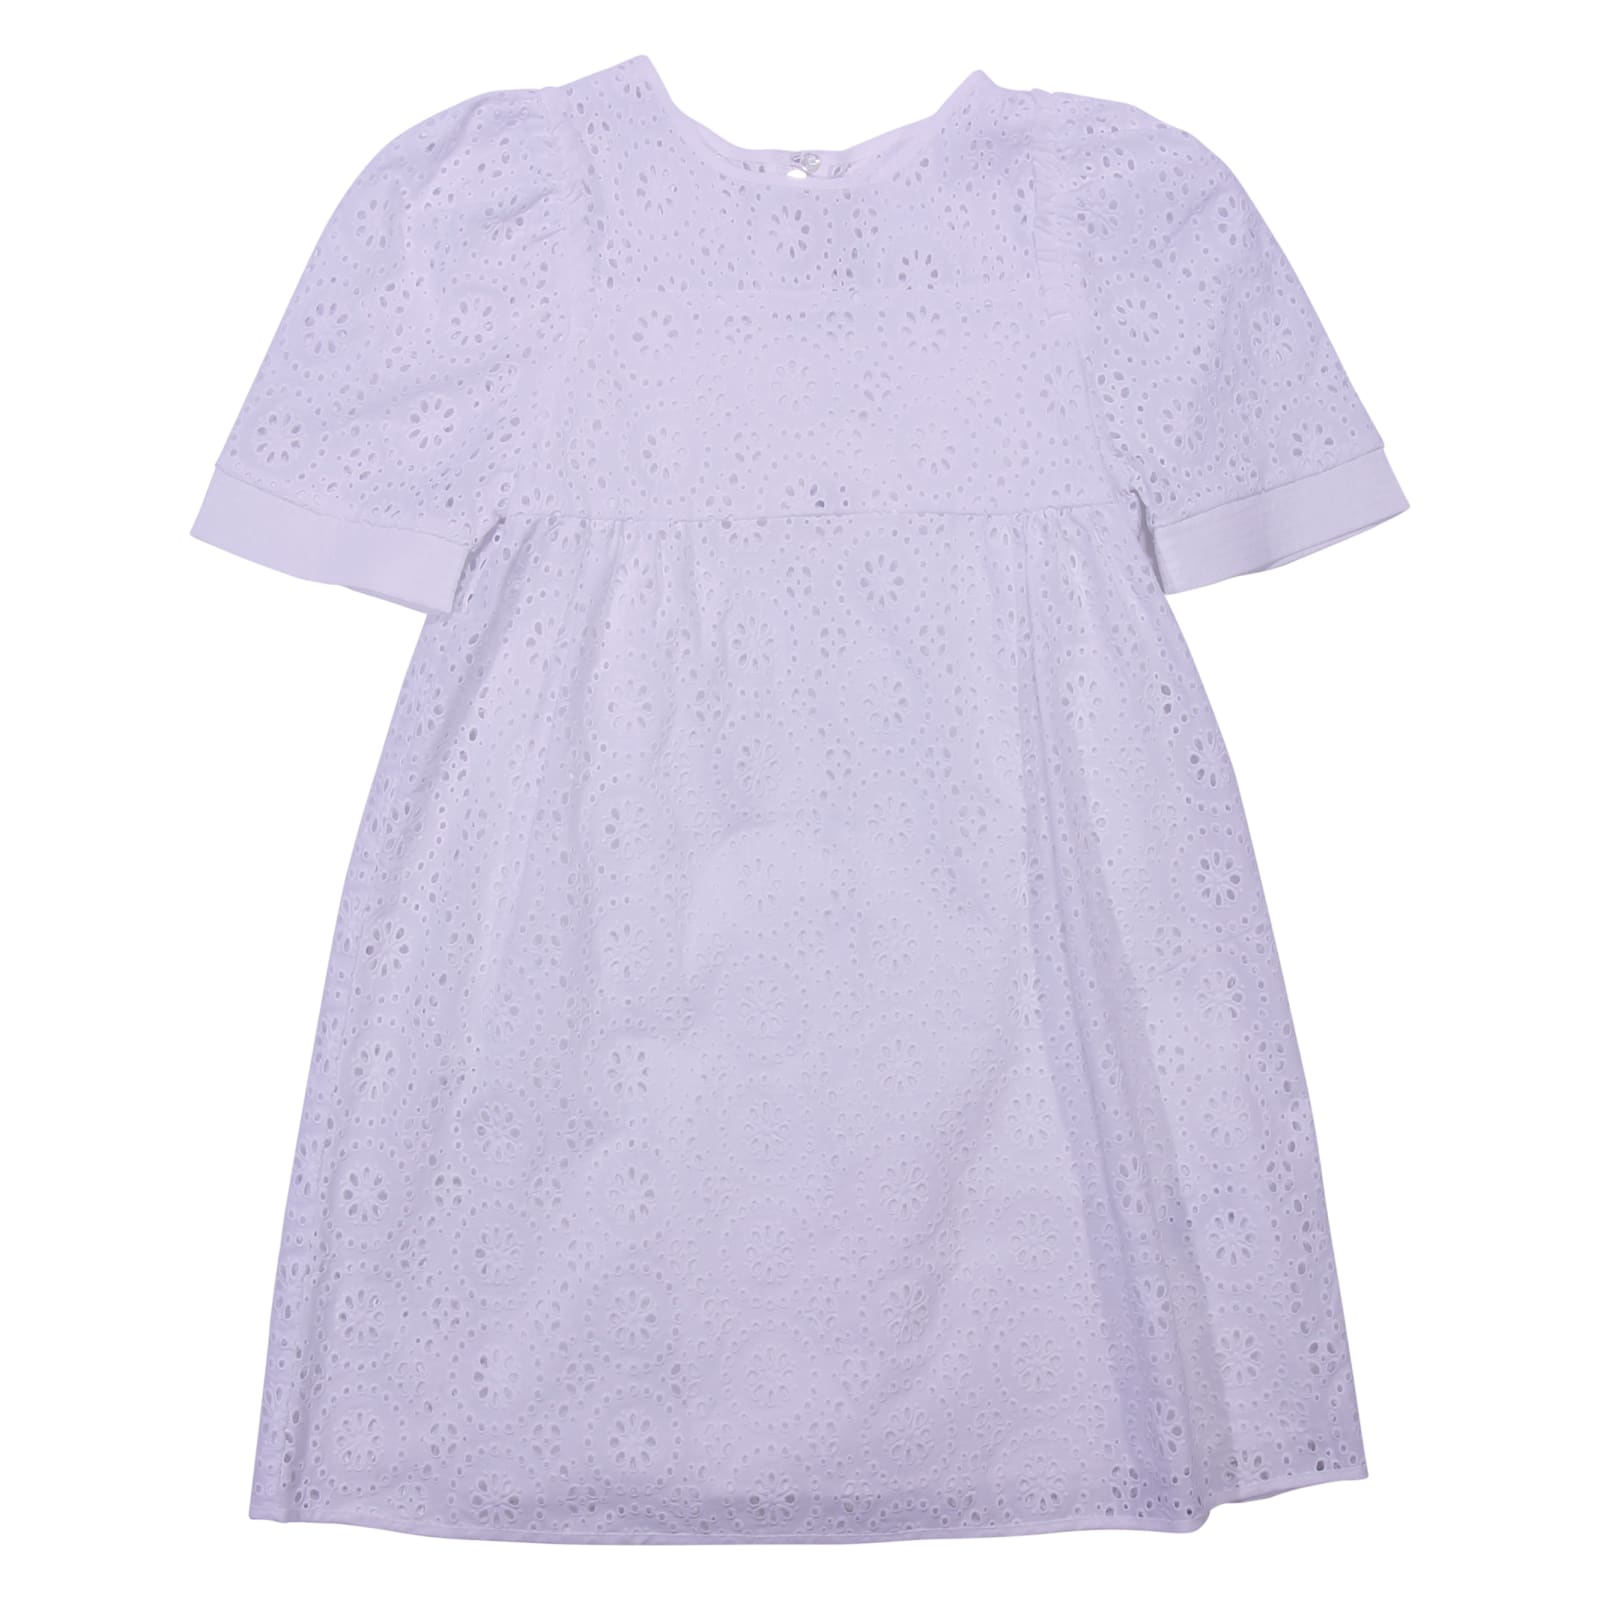 Chloé White Eyelet Cotton Lace Dress